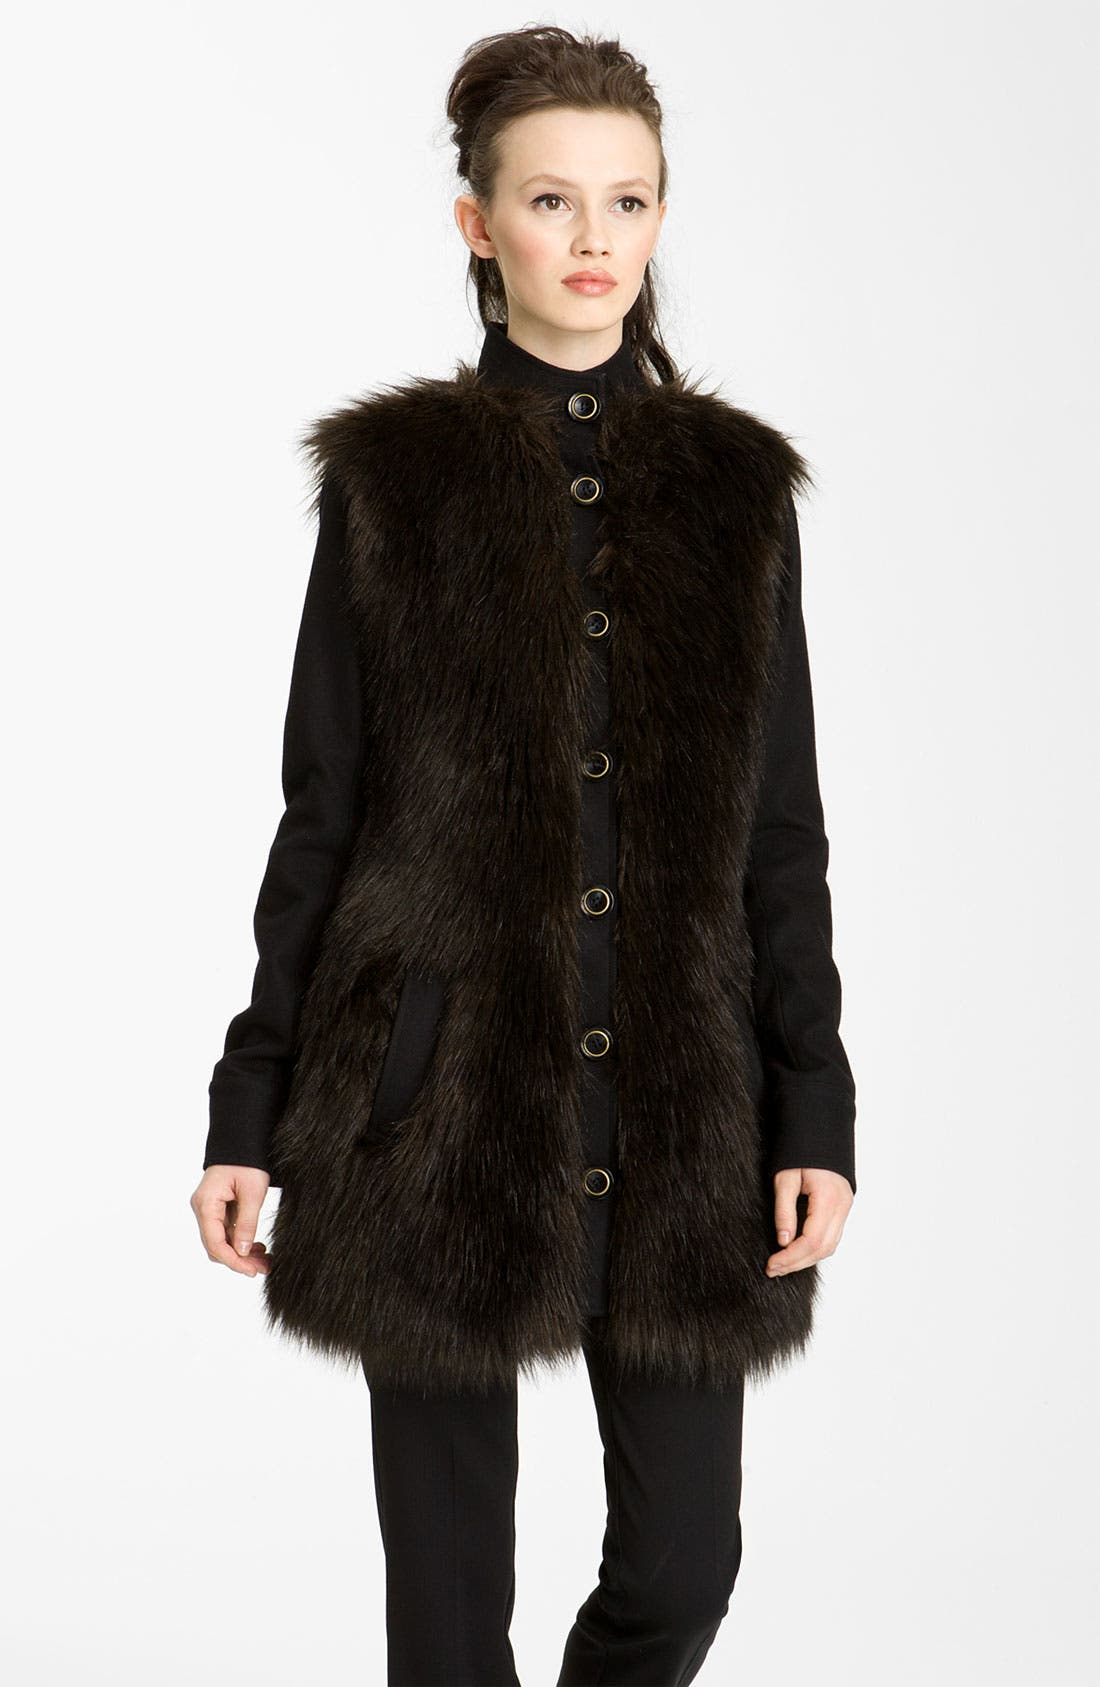 Alternate Image 1 Selected - Rachel Zoe 'Marianna' Faux Fur Jacket